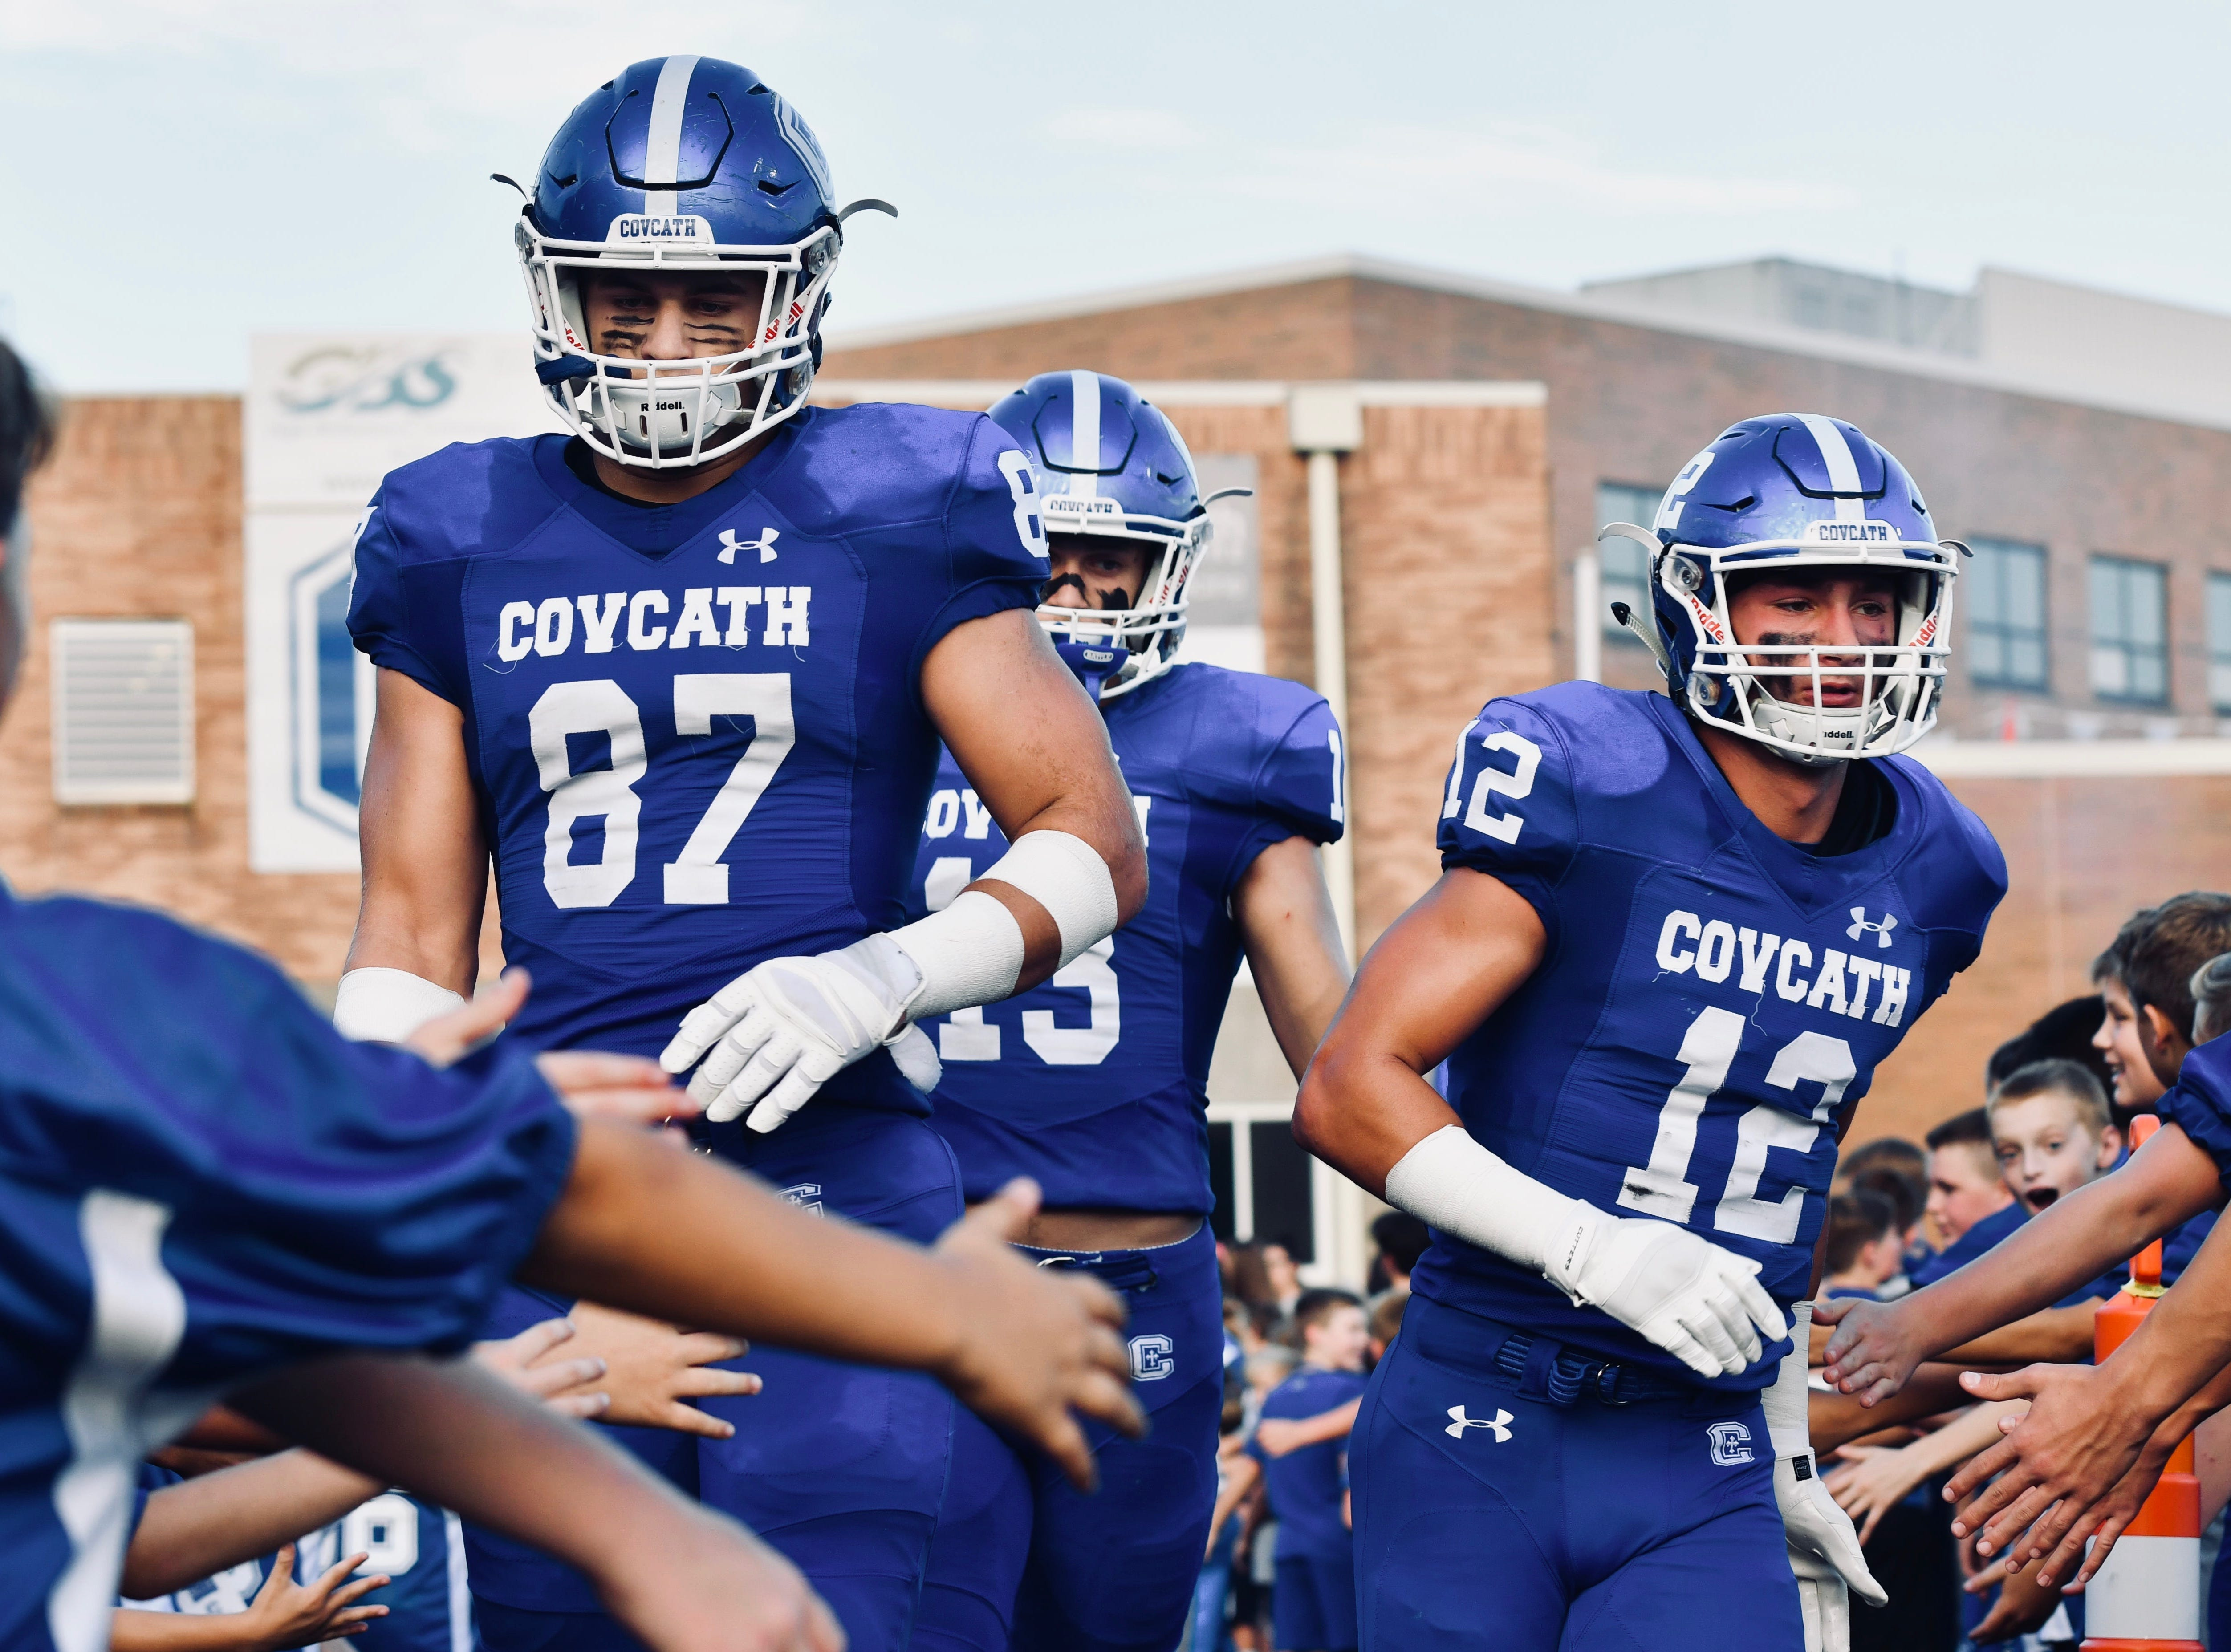 The Covington Catholic captains Michael Mayerm, Jack Coldiron and Tyler Reusch take the field prior to kickoff against Beechwood Friday, Sept. 14, 2018.